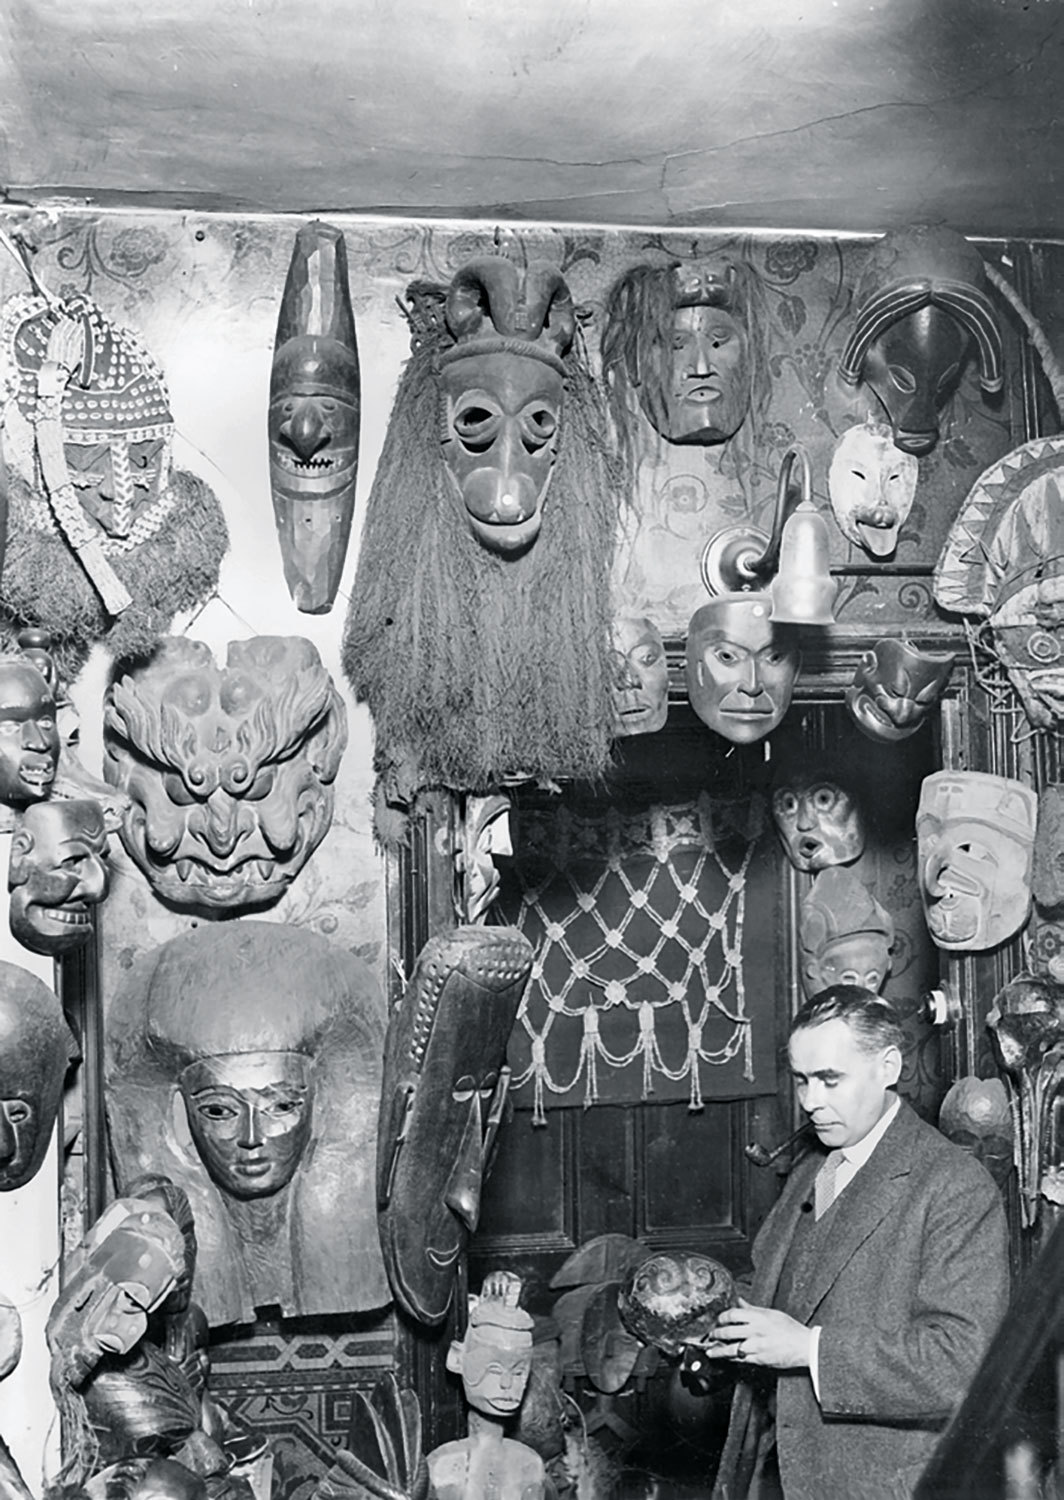 W. O. Oldman with masks and headdresses, ca. 1920. Photo: Pacific and Atlantic Photos Ltd.